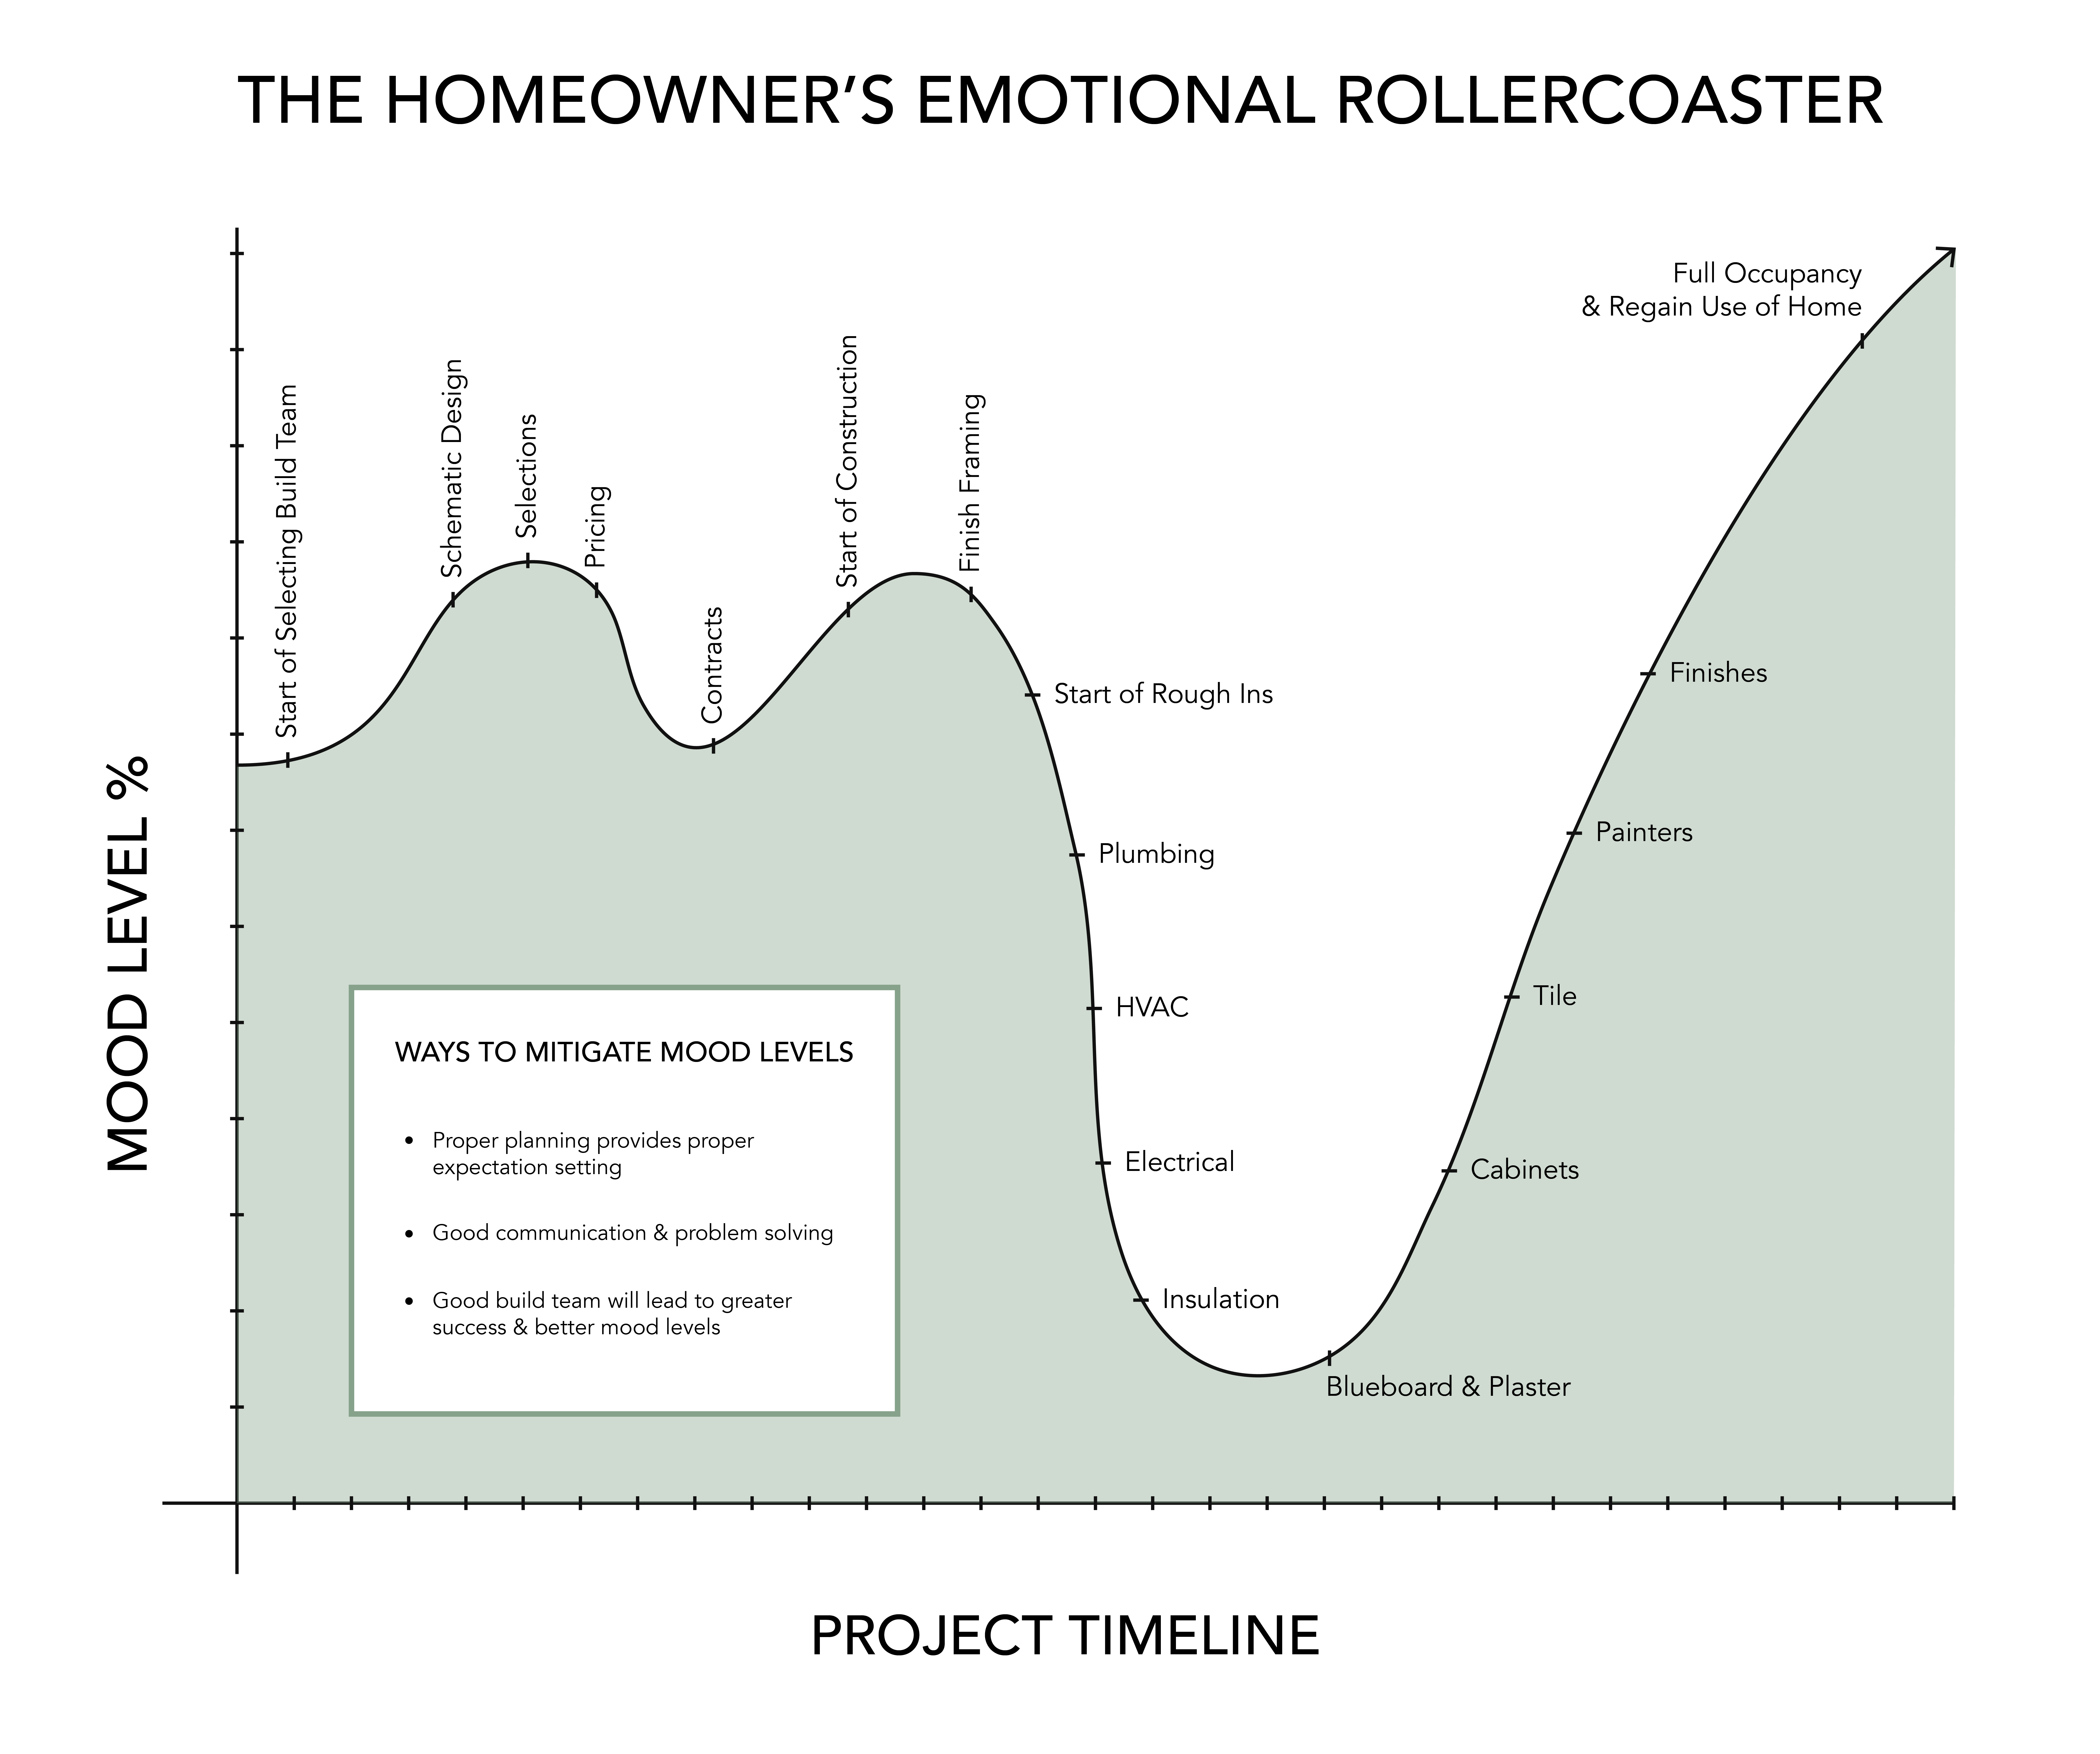 homeowner's emotional rollercoaster in home renovation